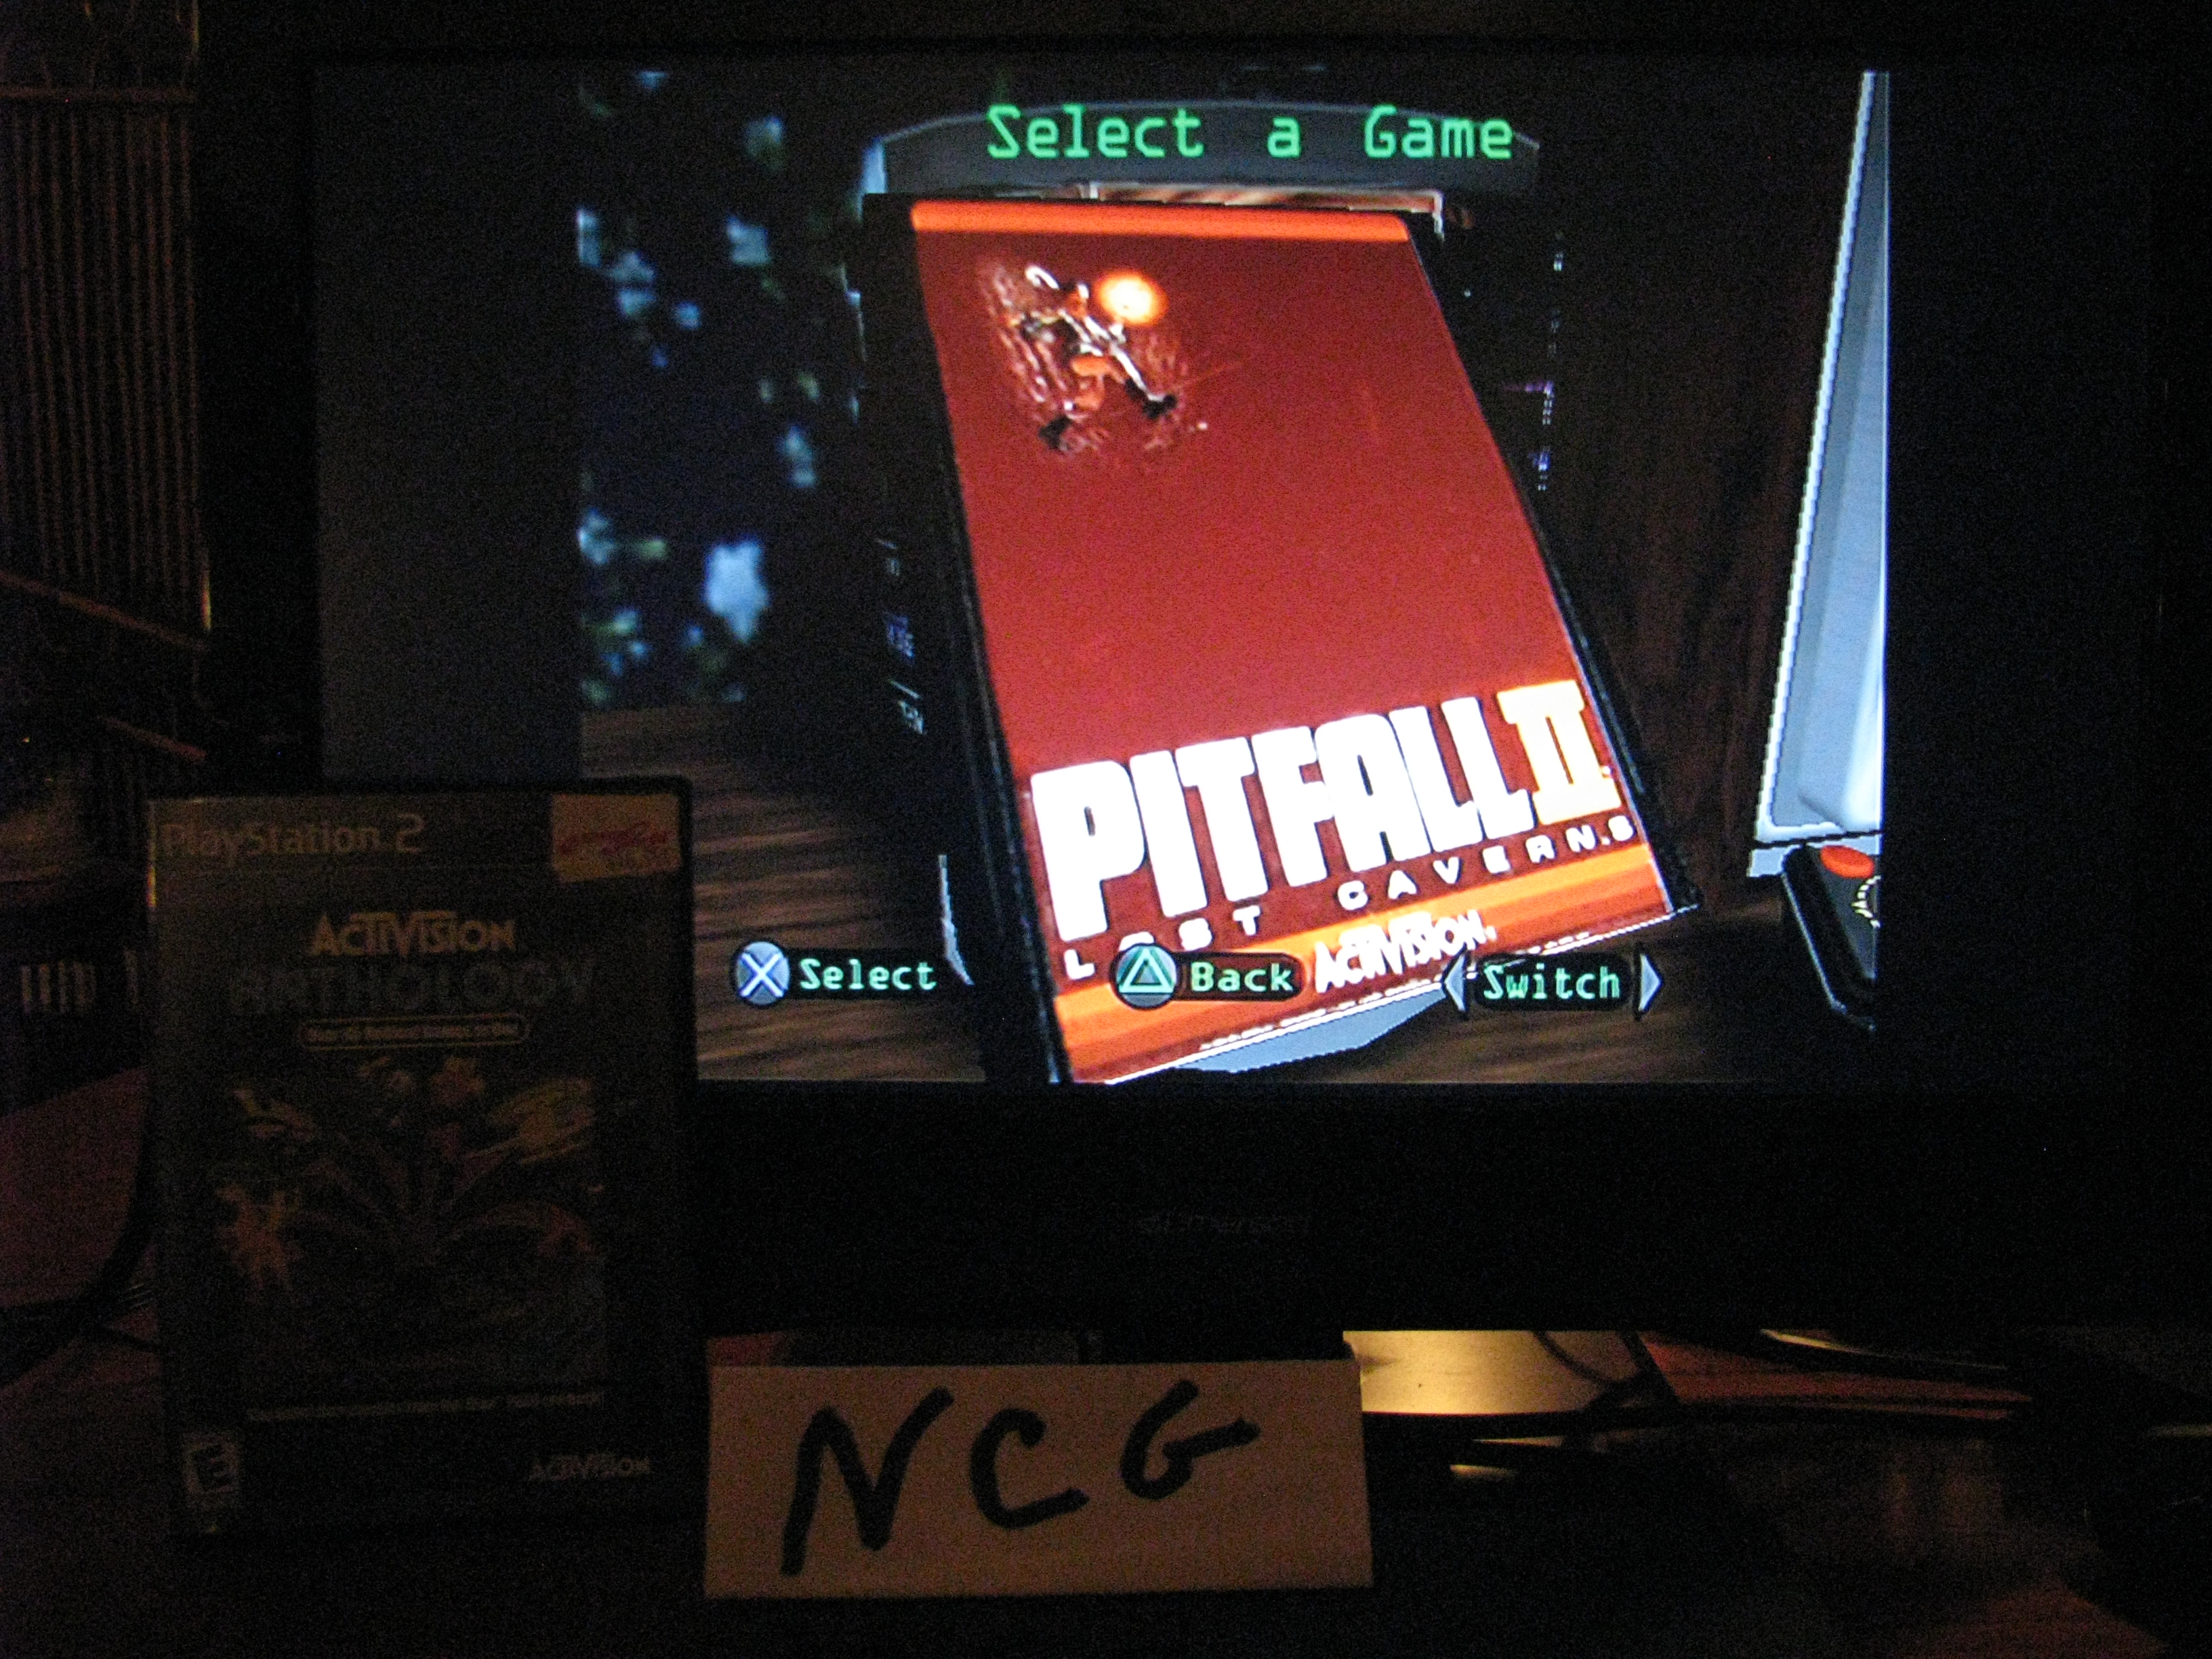 NorthCoastGamer: Activision Anthology: Pitfall II: Lost Caverns [Game 1] (Playstation 2) 199,000 points on 2014-10-15 13:43:42